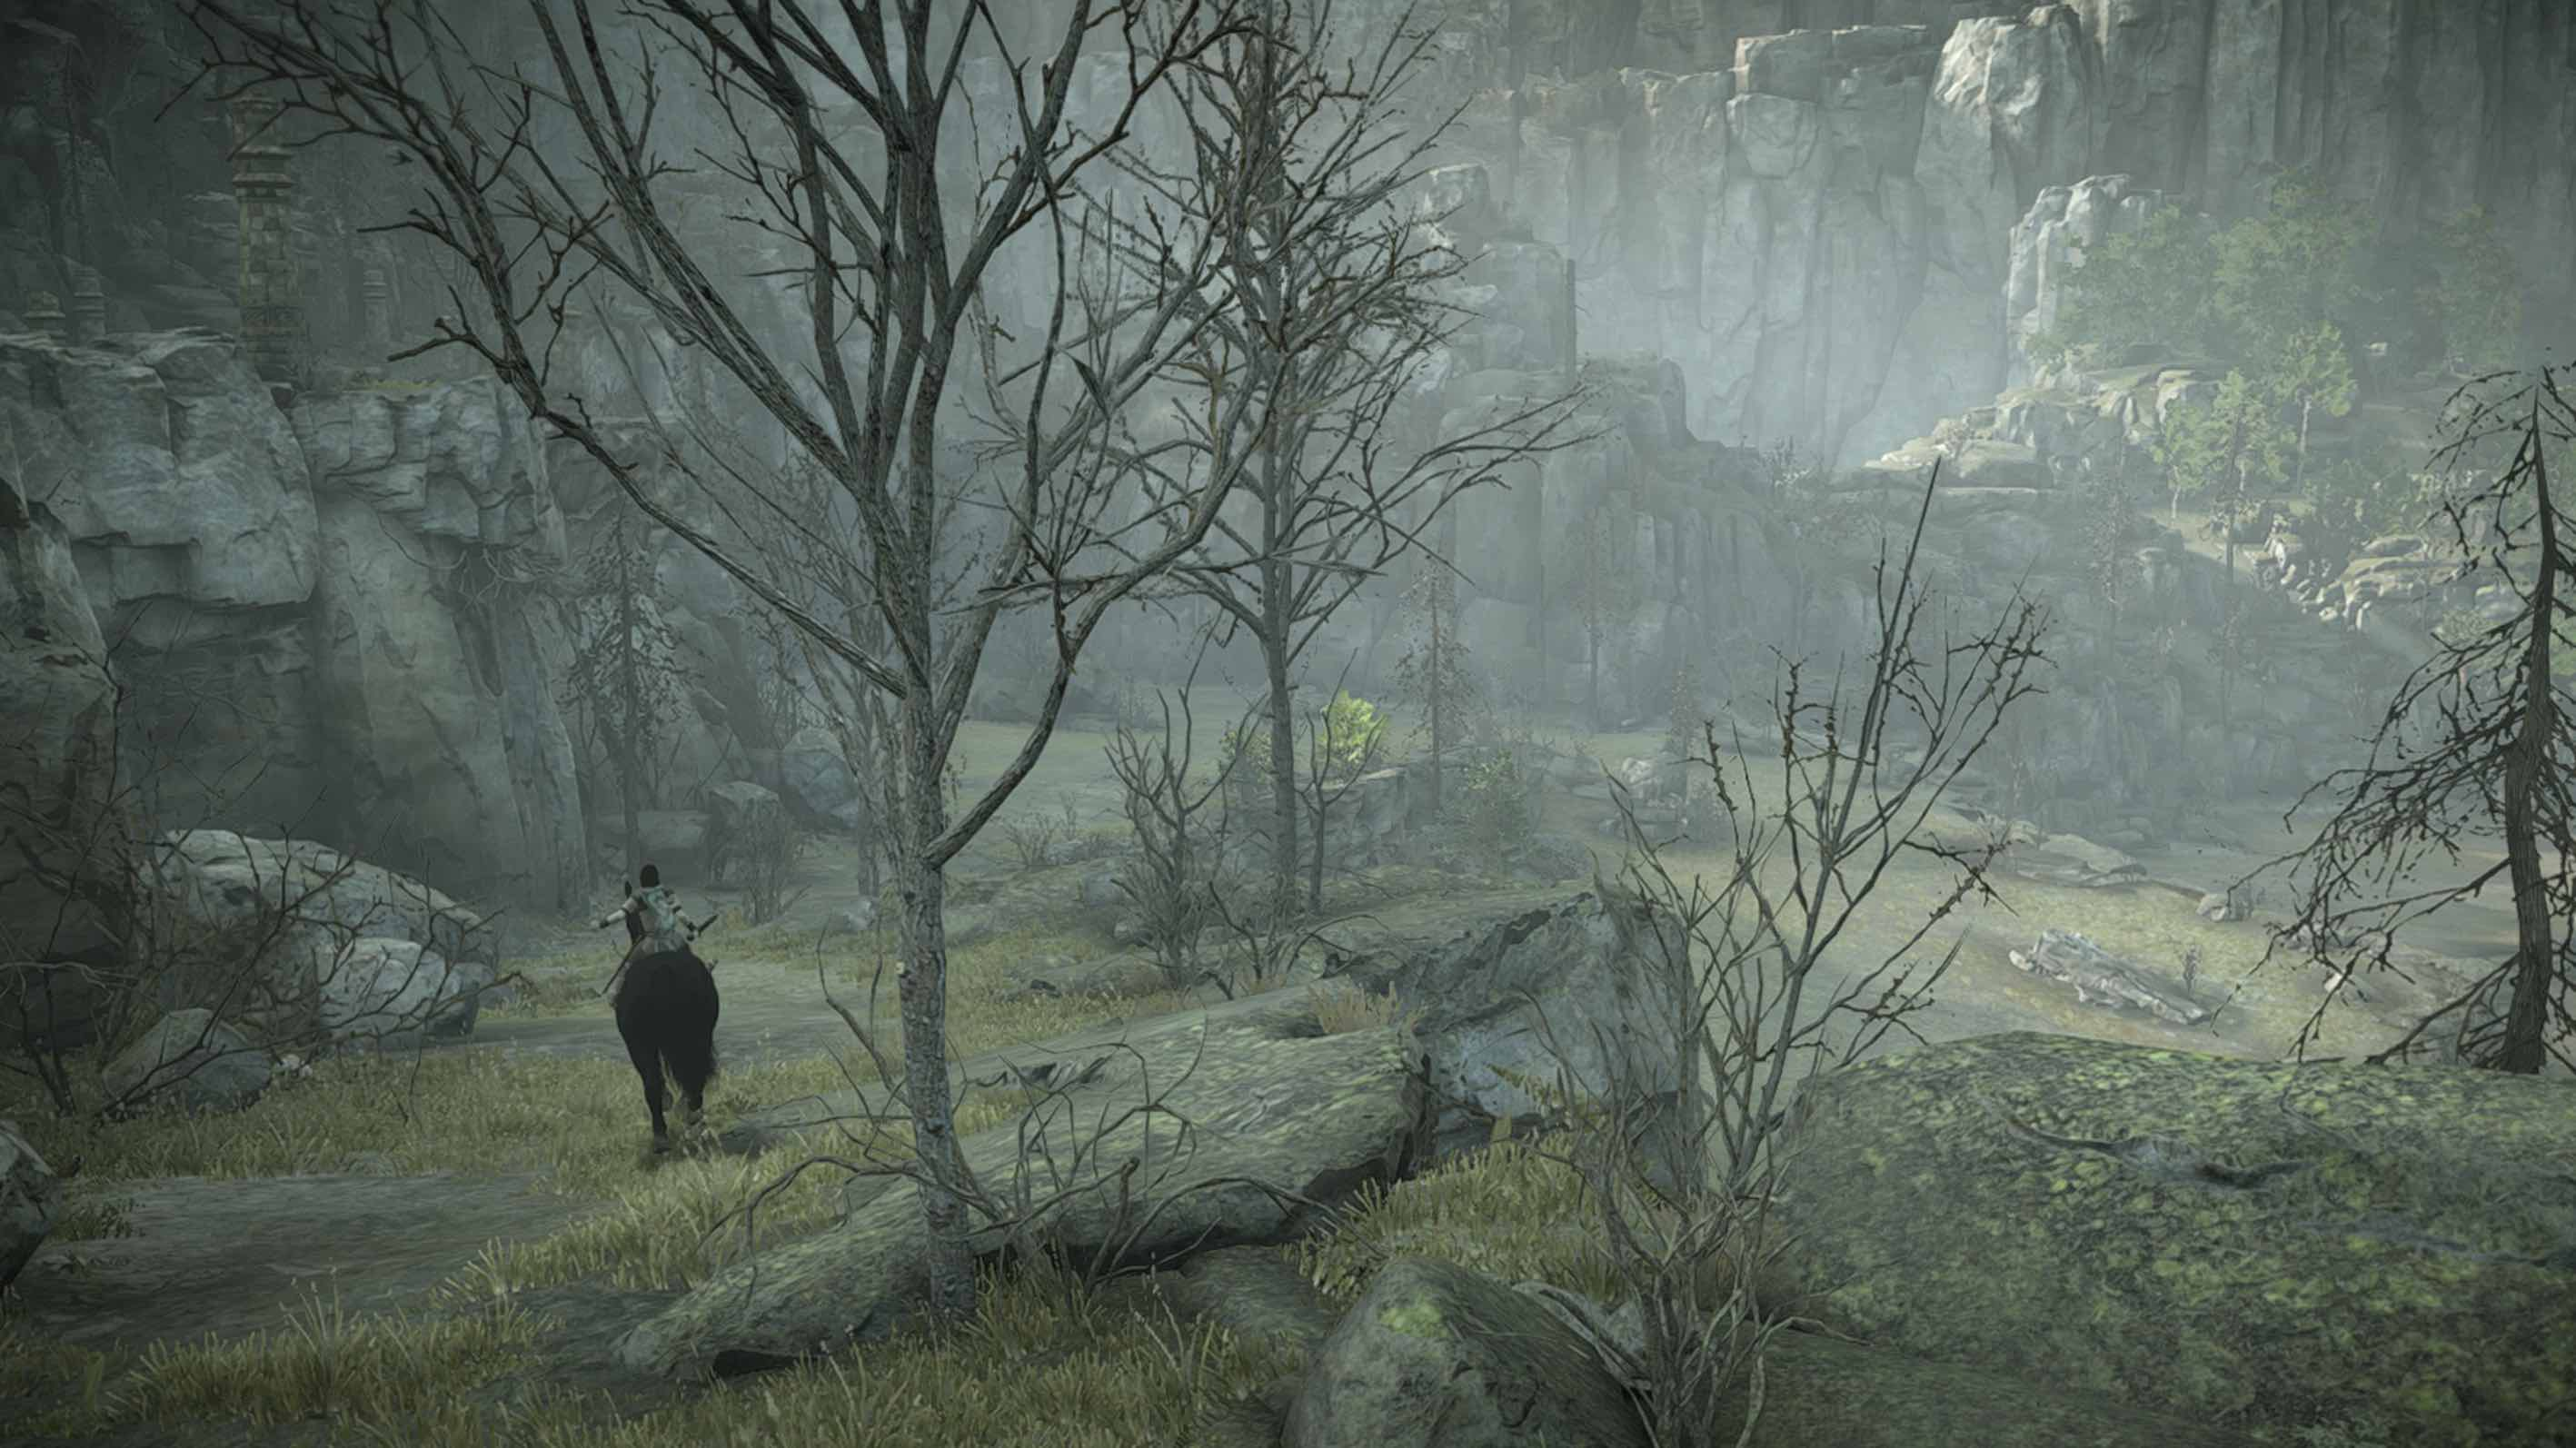 Shadow_of_the_Colossus_Coloso_7_1